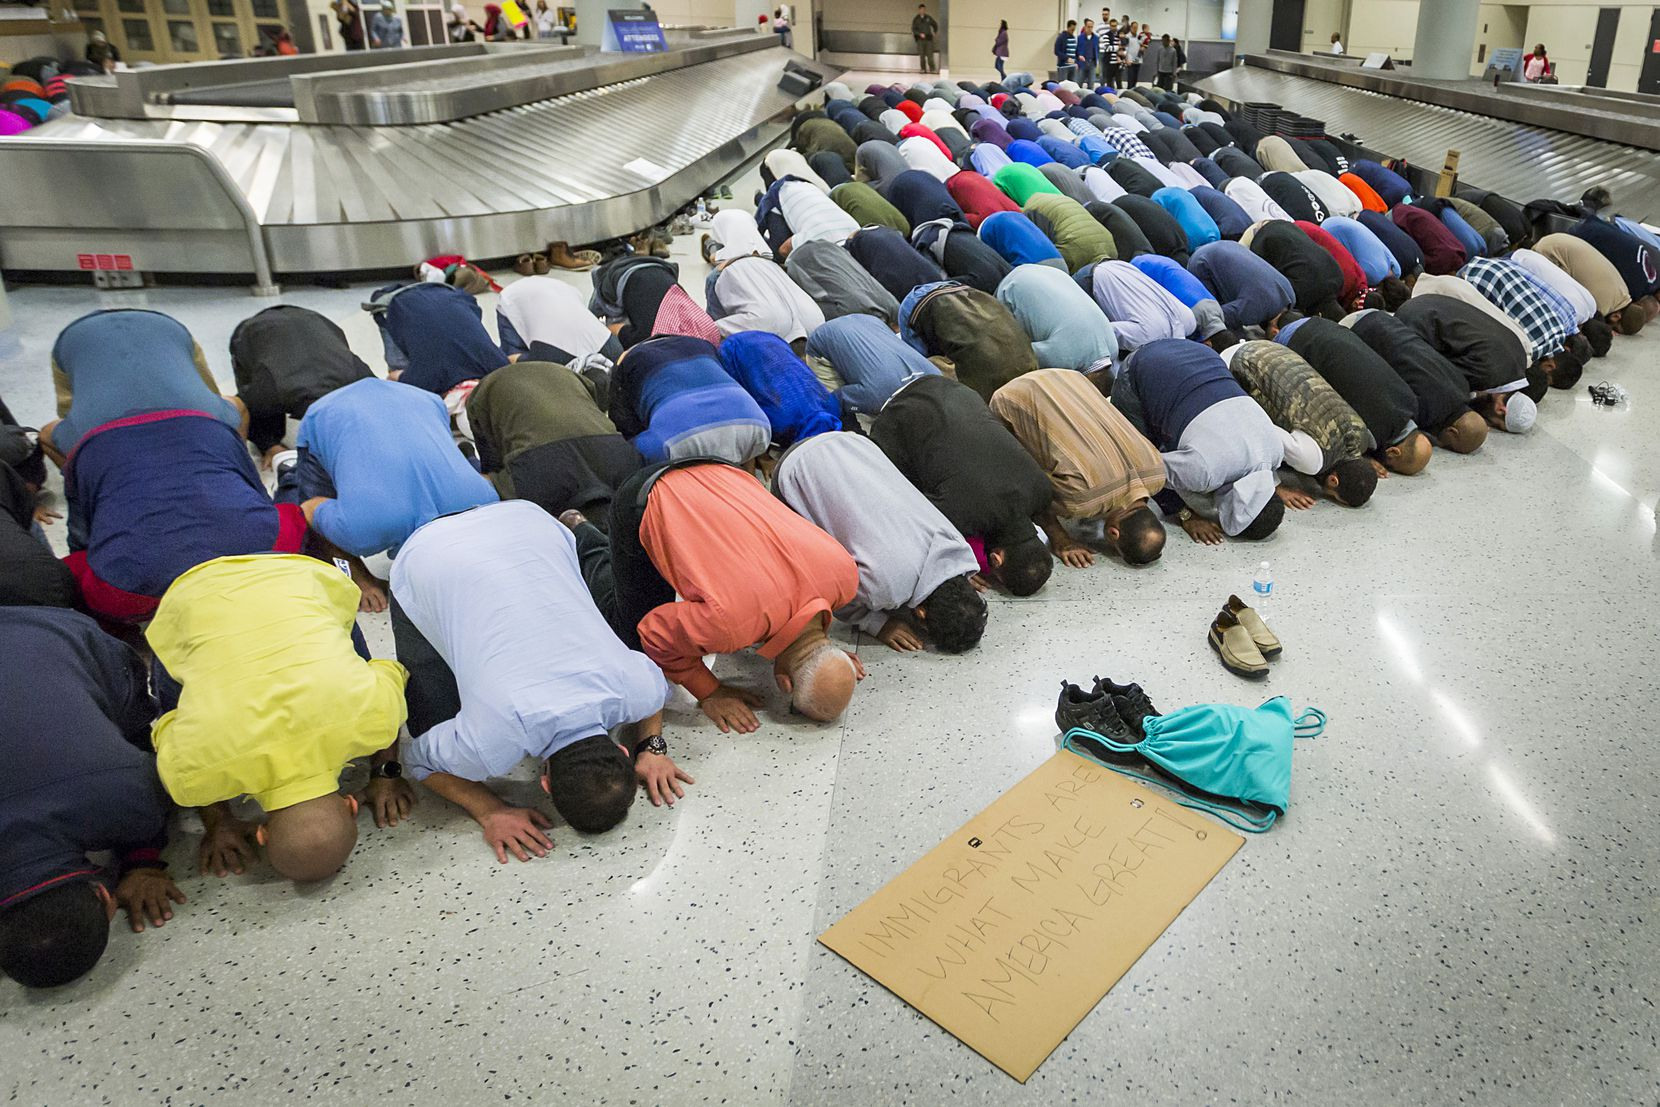 Muslim men set down their protest signs to pray at DFW International Airport where they gathered in opposition to President Donald Trump's executive order barring certain travelers on Sunday, Jan. 29, 2017. Multiple travelers were detained at DFW after Trump shut borders.